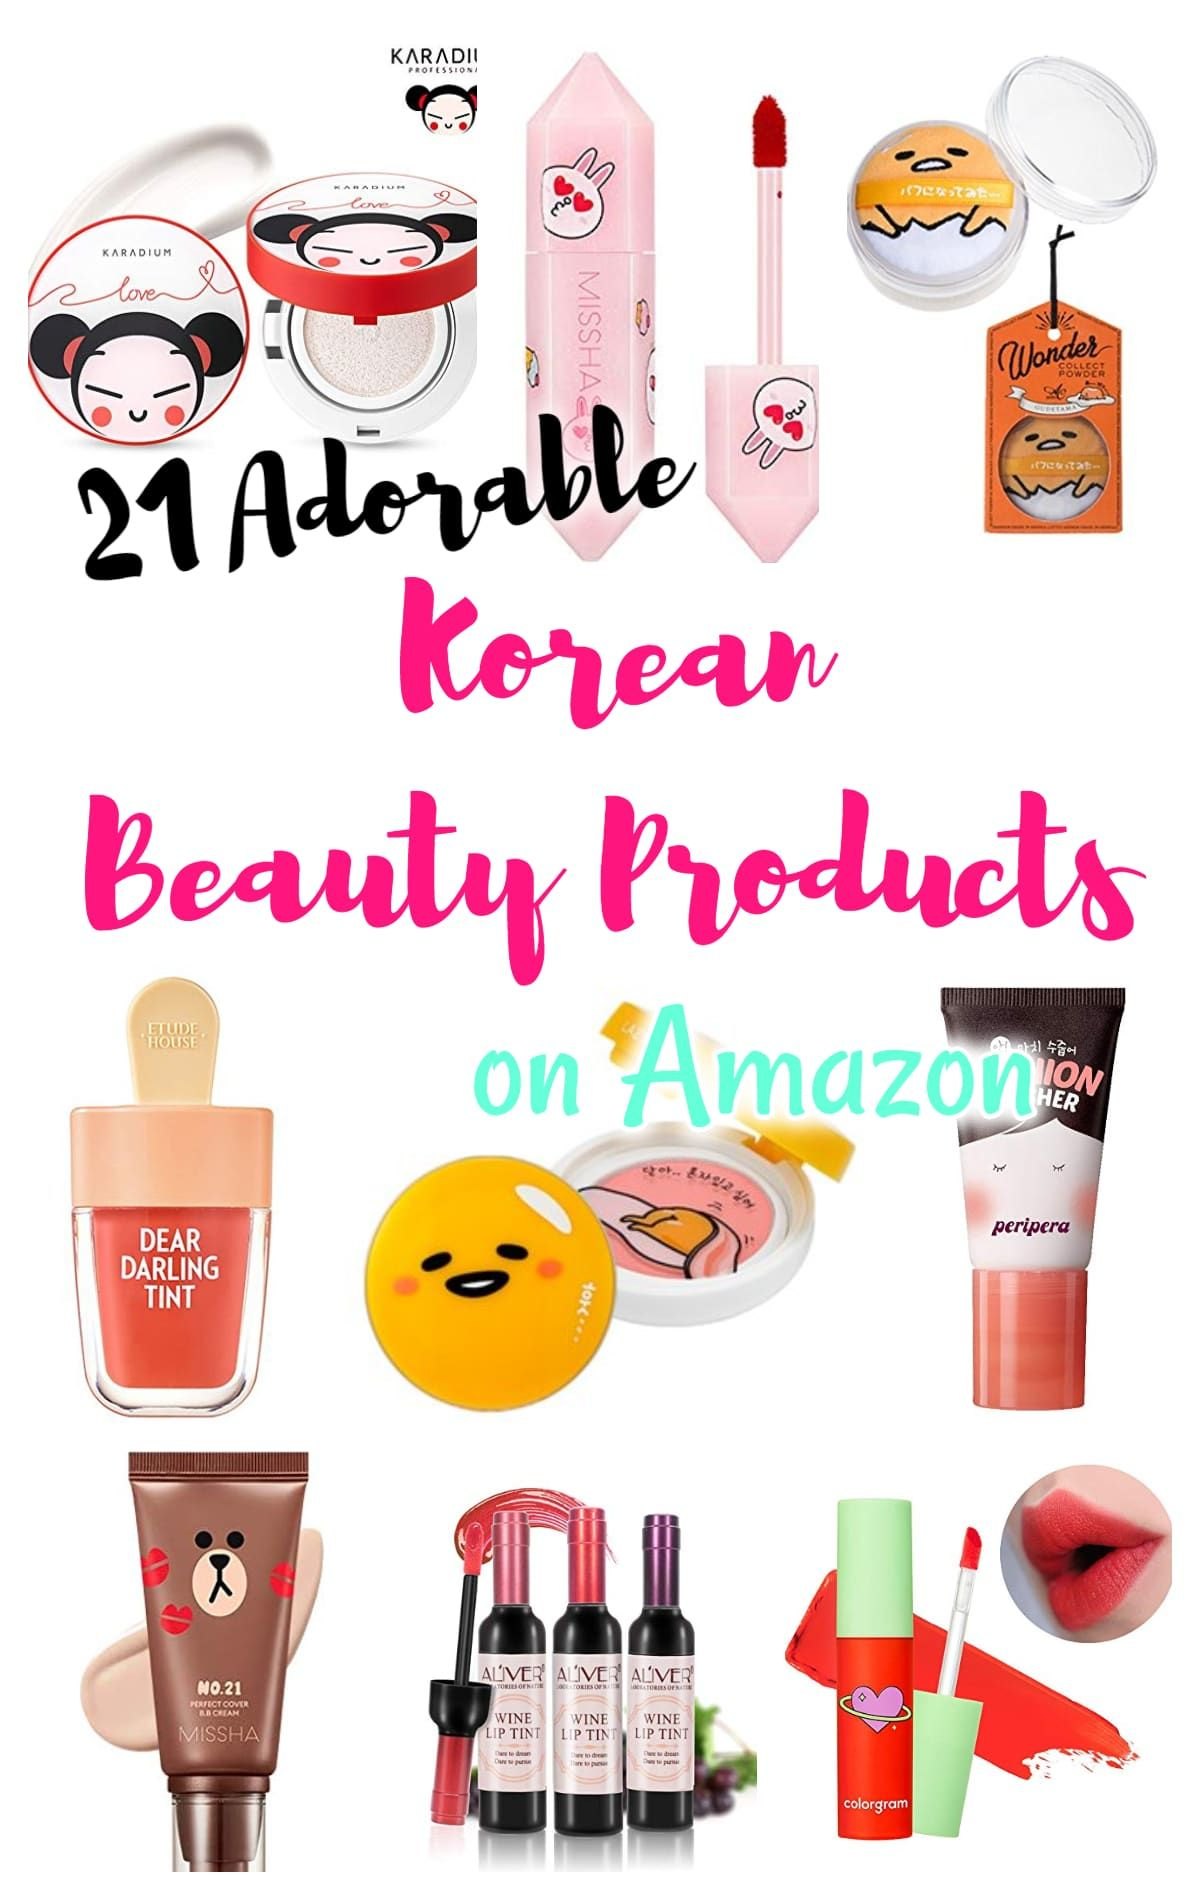 21 Adorable Korean Beauty Products on Amazon in 2020 (With